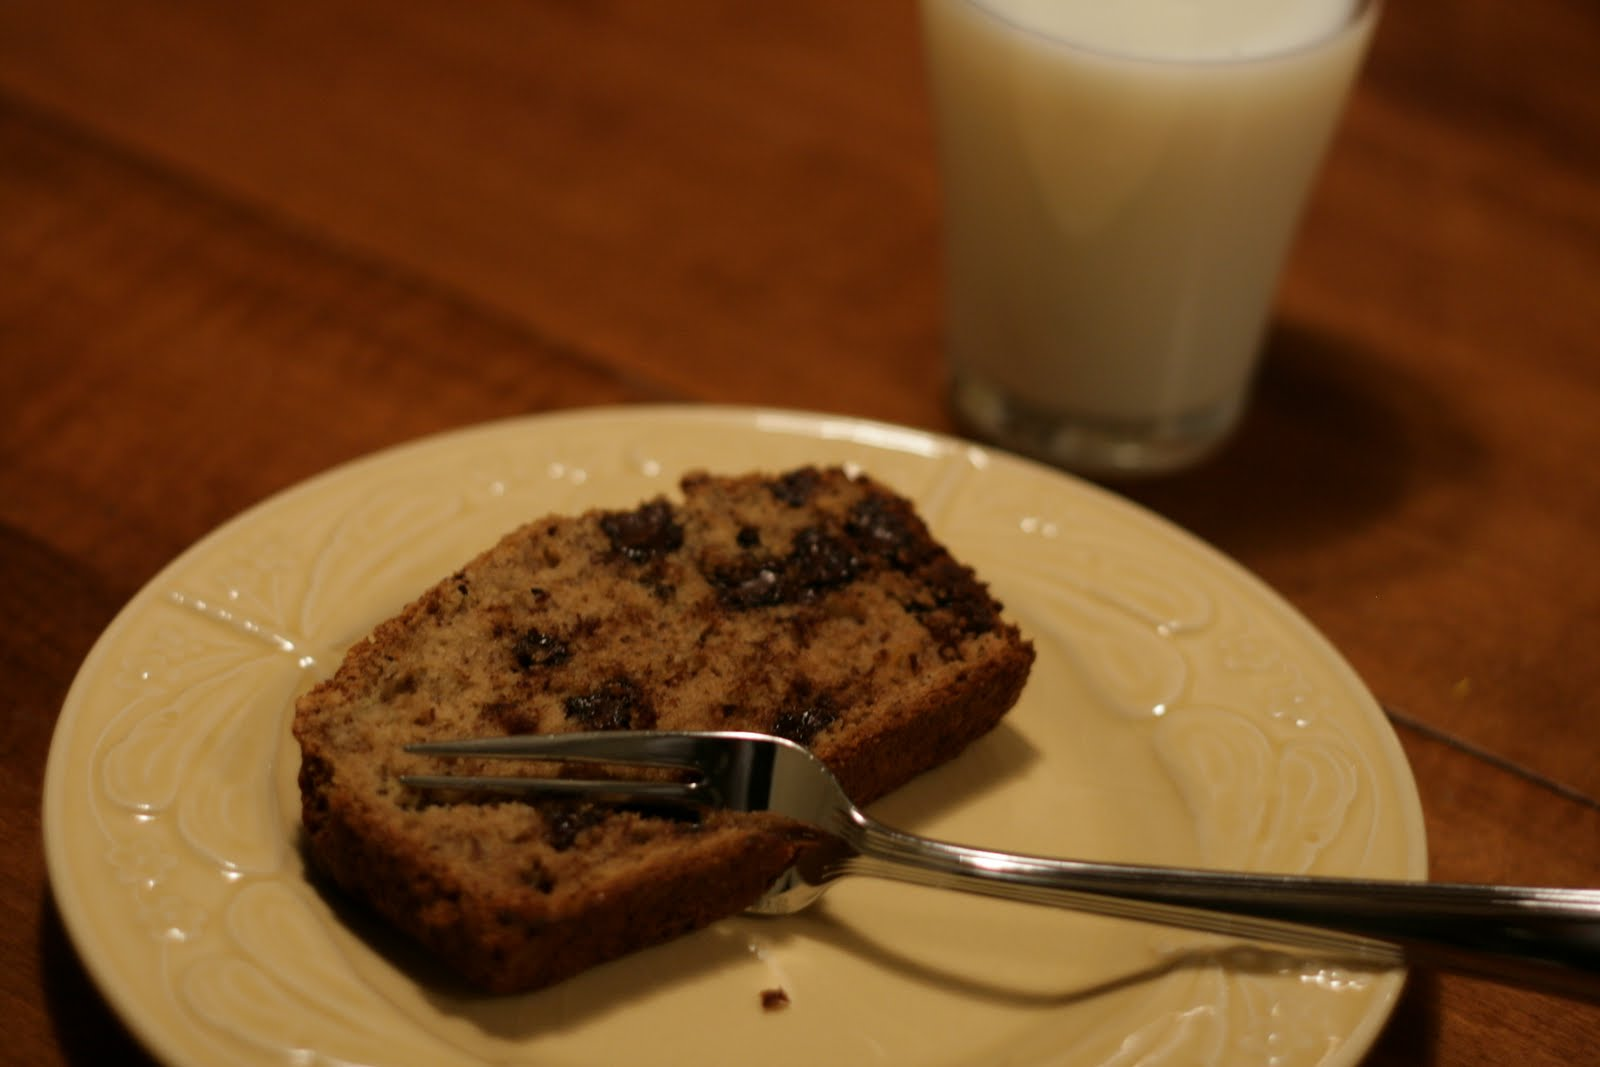 in Beantown: Lemony olive oil banana bread with chocolate chips